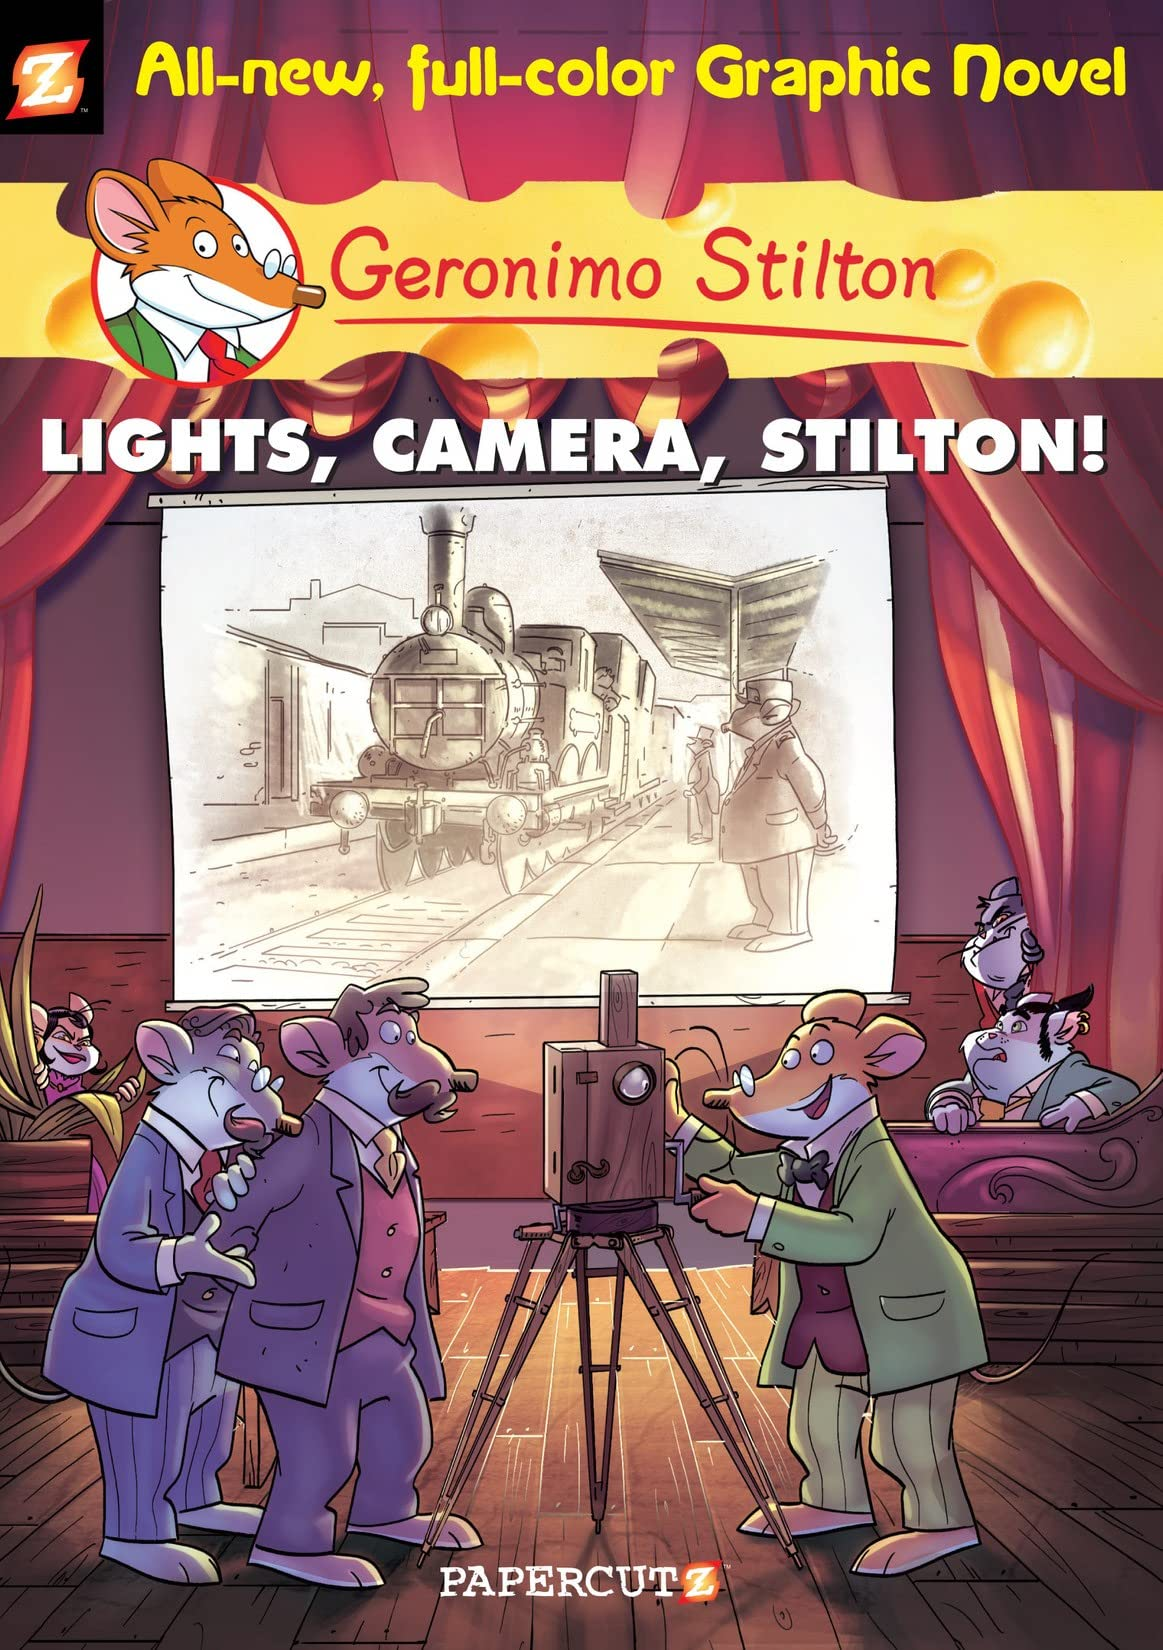 Geronimo Stilton Vol. 16: Lights, Camera, Stilton!